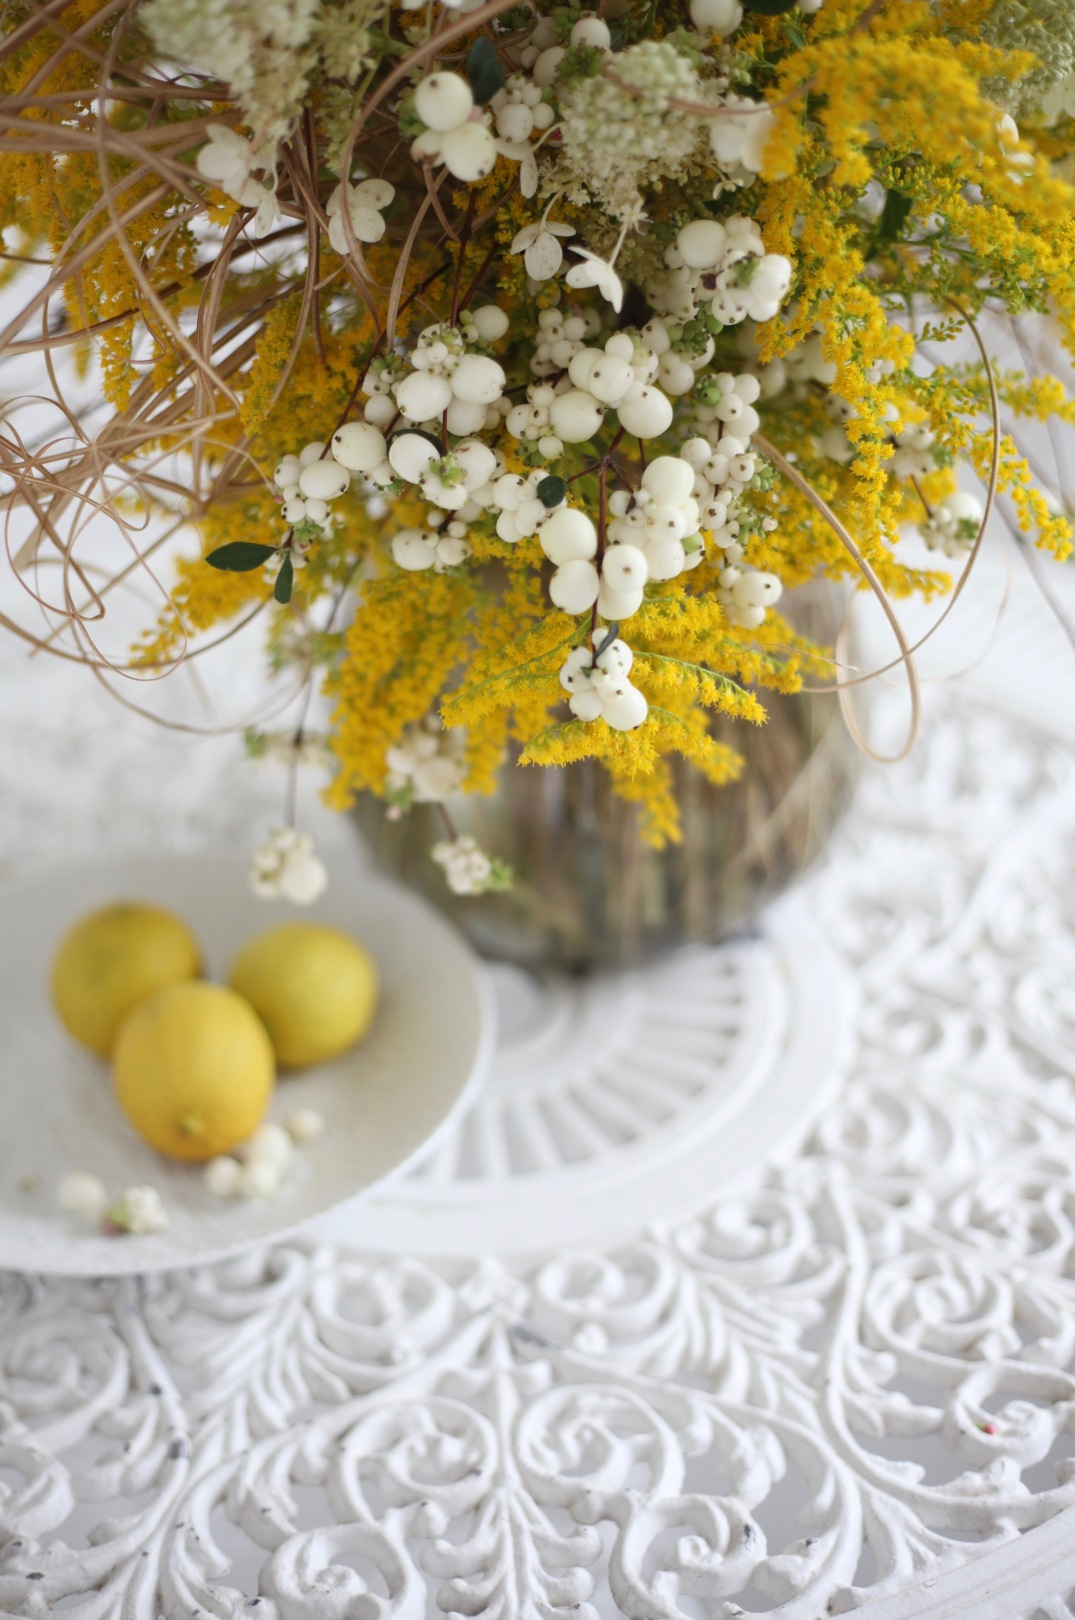 late summer flower arrangement with wild yellow flowers and snowberries